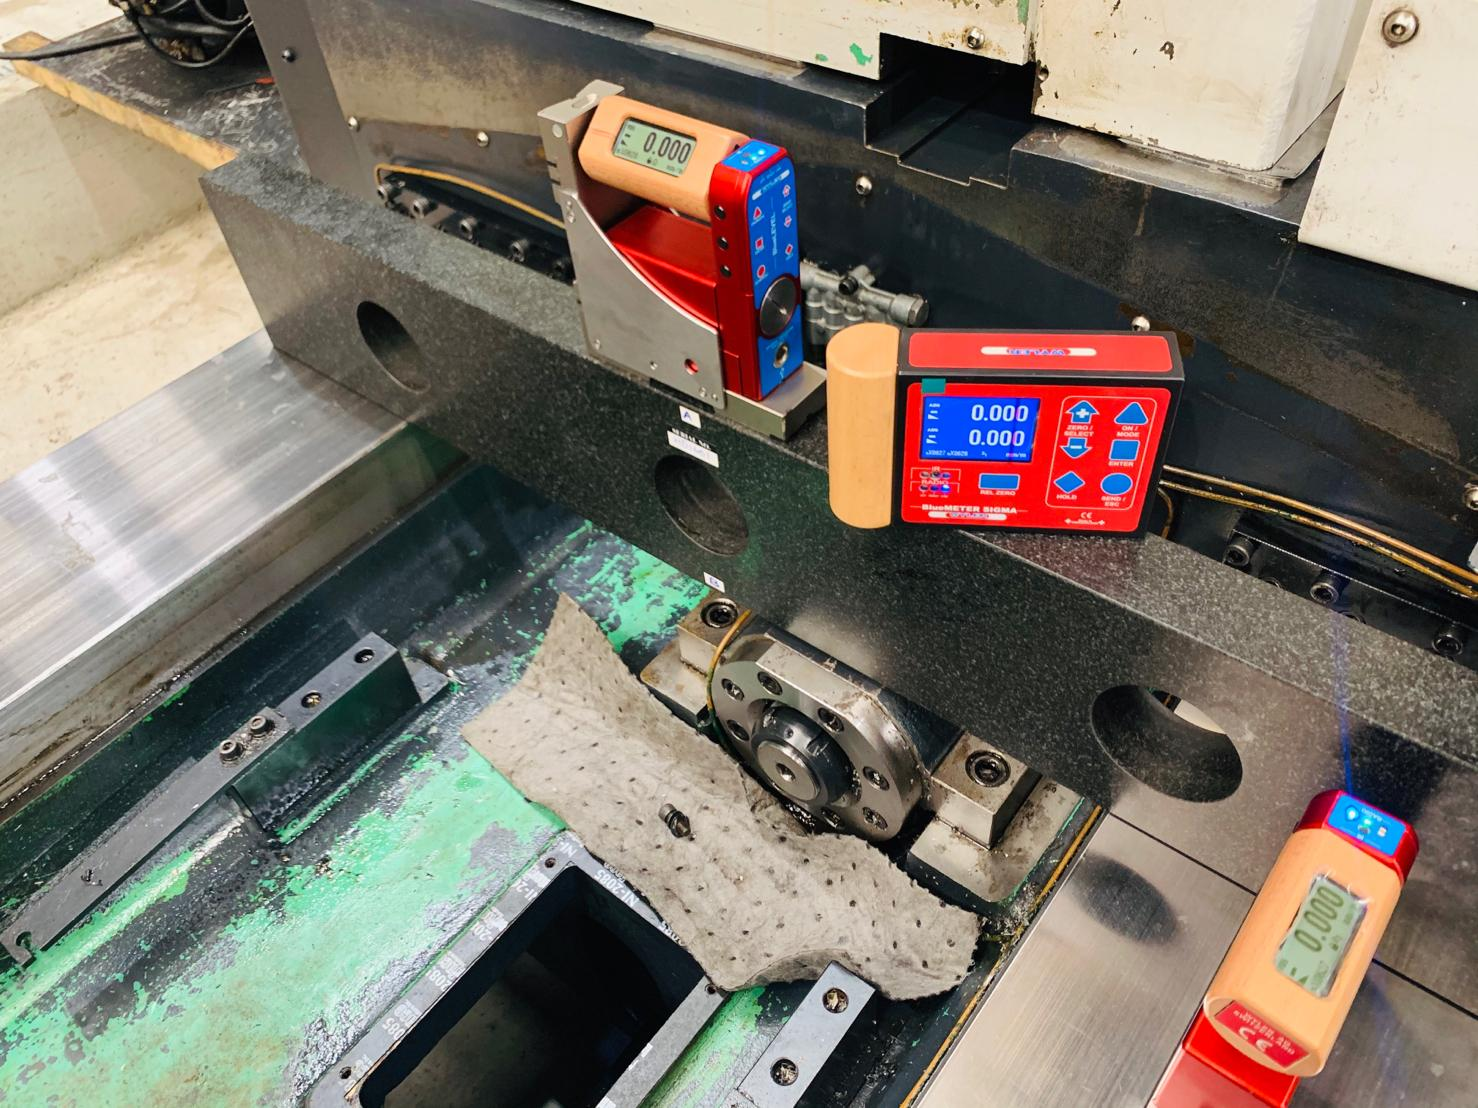 July 2020: WYLER Inclinometers Provide Socially Distanced Measurement Solution for Machinery Removals Company